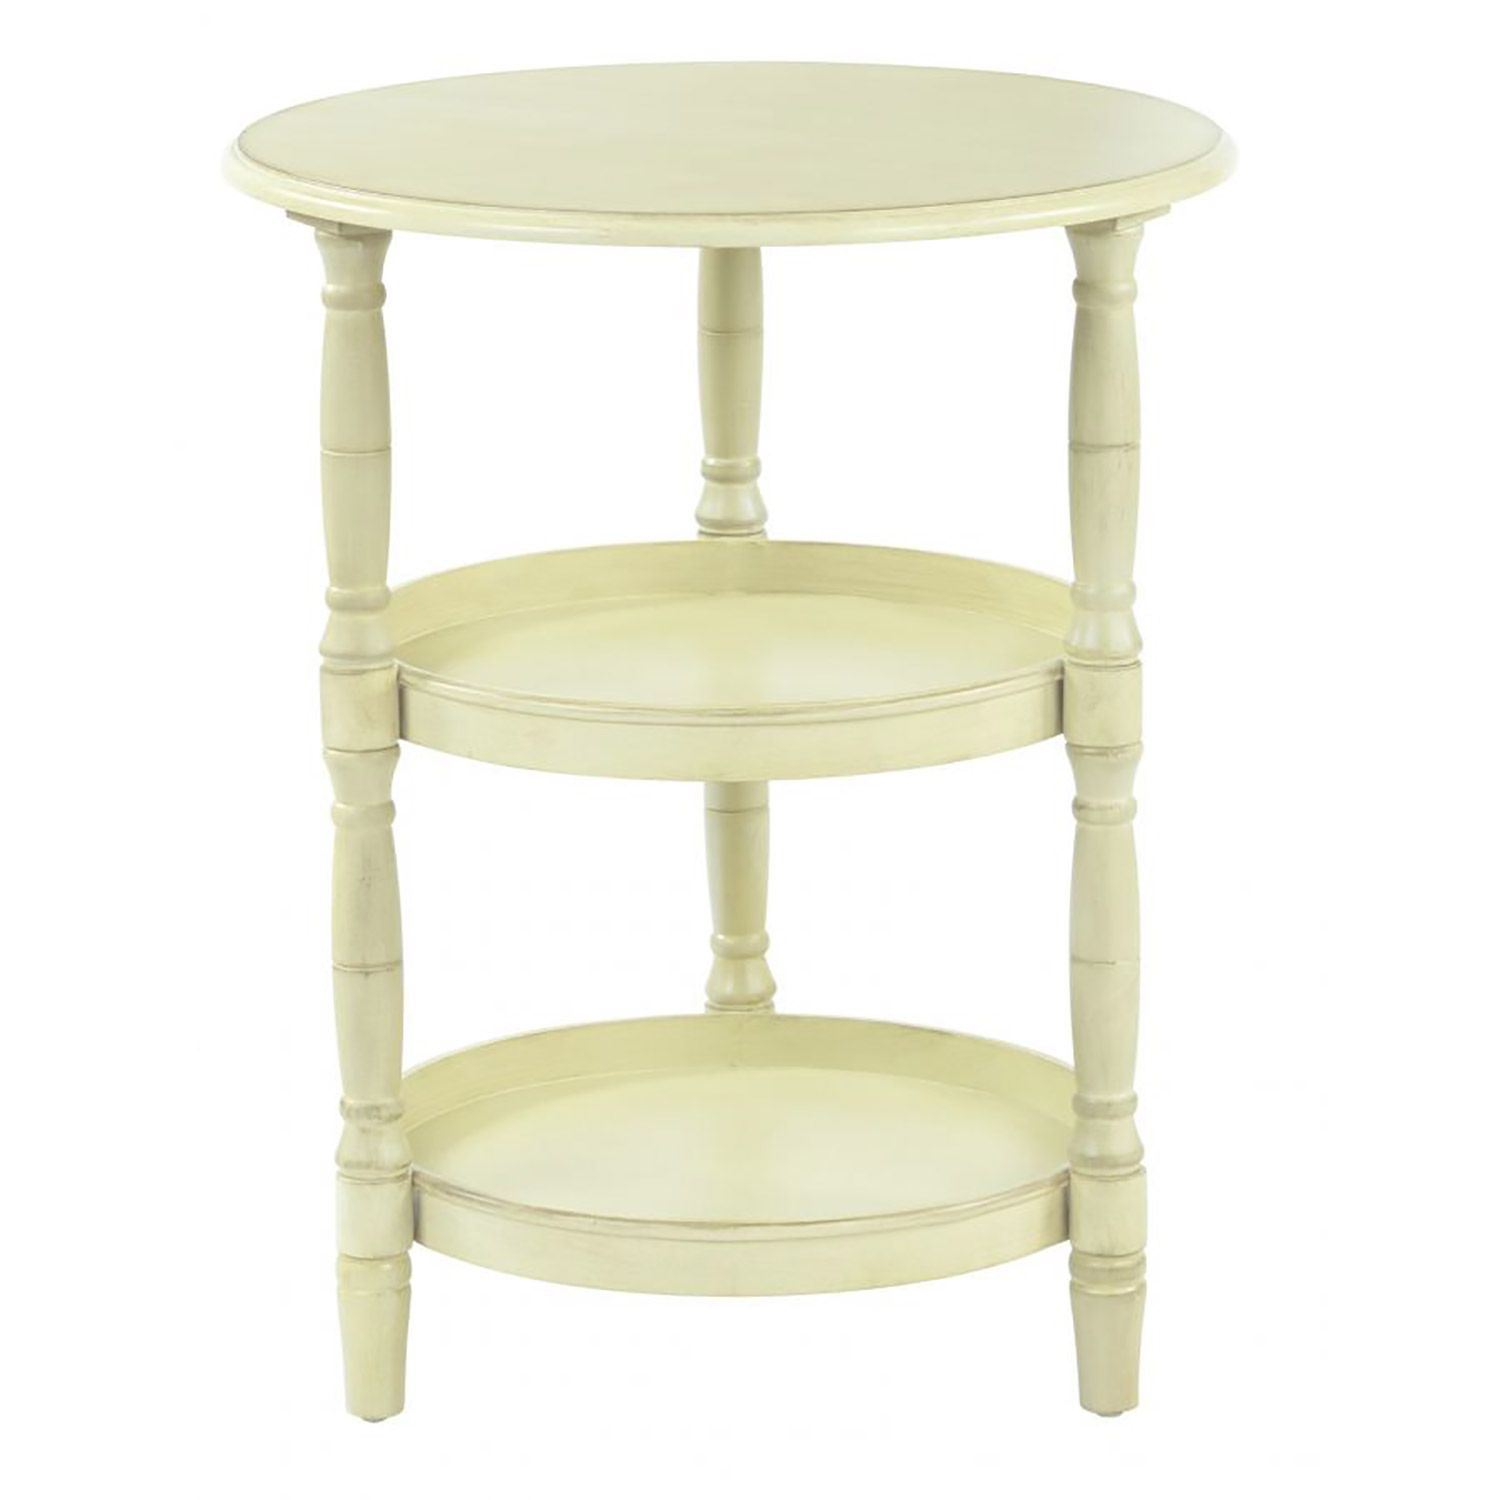 lynwood round accent table antique celadon osp small tables fireplace chairs kidney bean coffee retro patio drum side cabinet poolside storage box seat ikea decorative cover dale